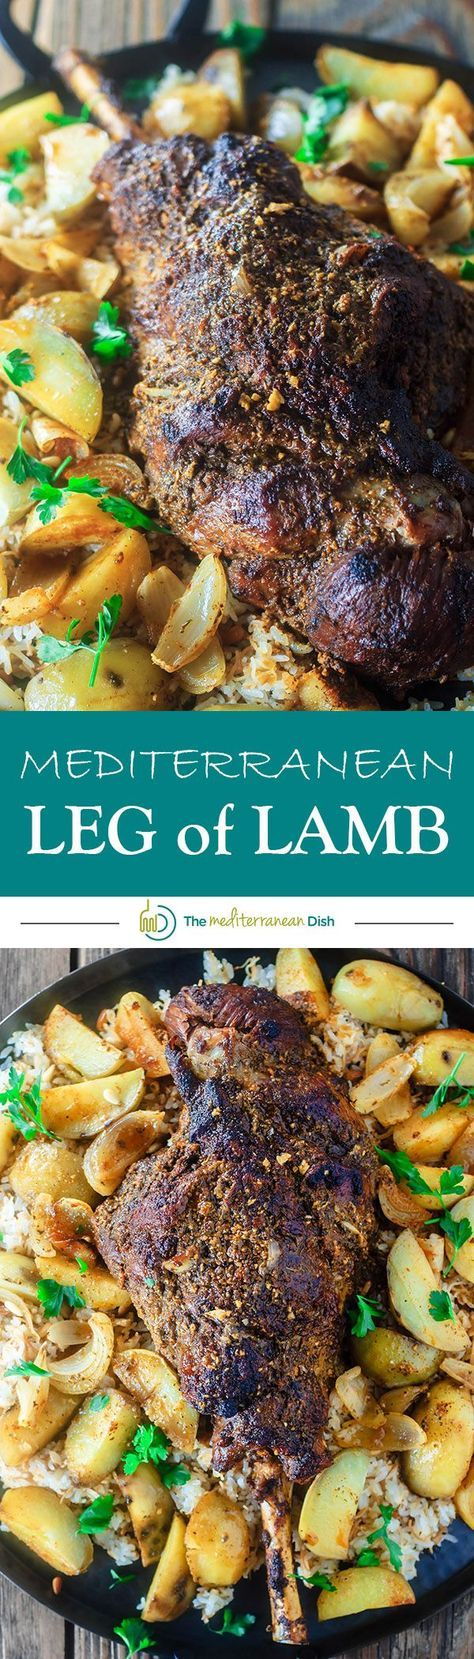 Mediterranean-style Leg of Lamb Recipe | The Mediterranean Dish. Leg of lamb covered in a Mediterranean rub of fresh garlic, spices, olive oil and lemon juice. Roasted with potato wedges and served over rice pilaf. A delicious Easter recipe or for your ne